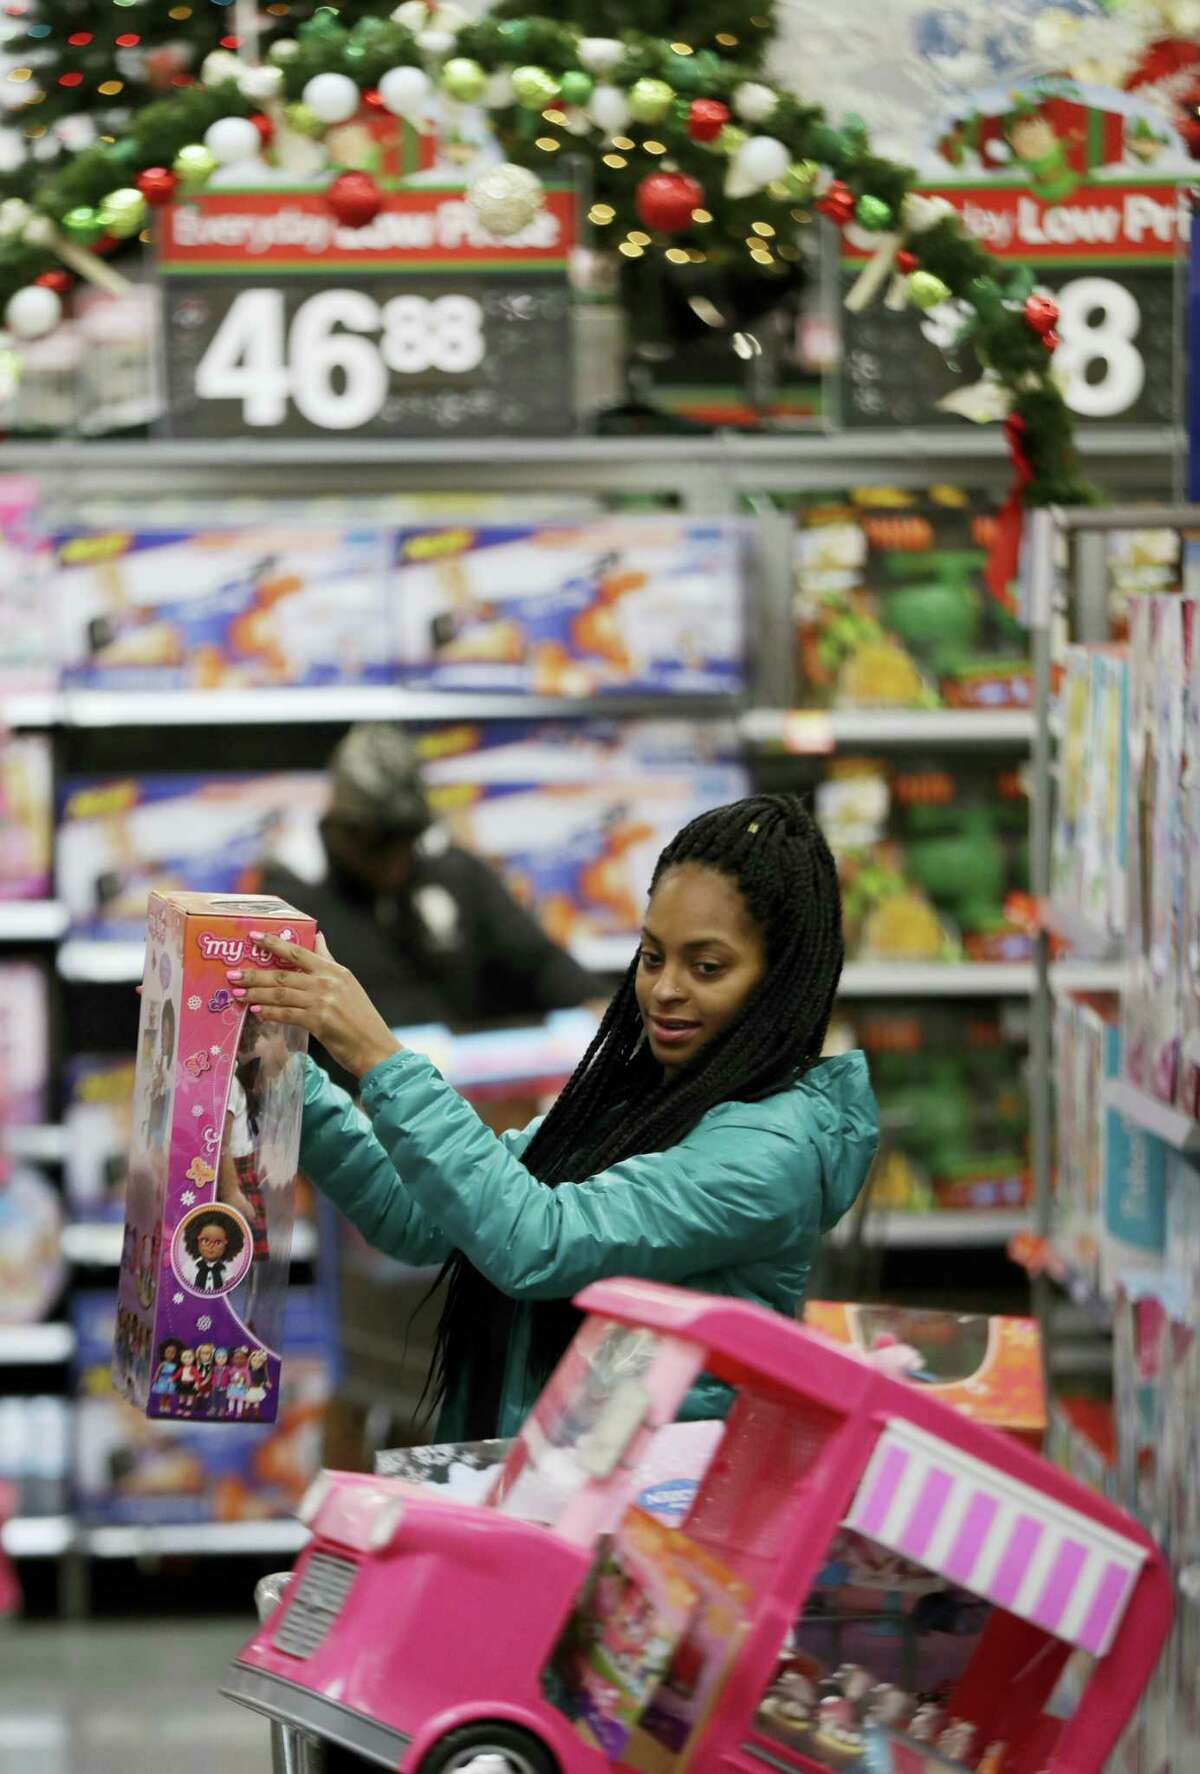 Choisette Hargon, of Paterson, N.J., shops for toys ahead of Christmas at Wal-Mart in Teterboro, N.J. It's easy to get caught up in the excitement of holiday shopping, but it's not always as easy to foot the bill. The National Retail Federation says consumers plan to spend an average of $935.58 during the holiday shopping season, which is the second highest level on record.